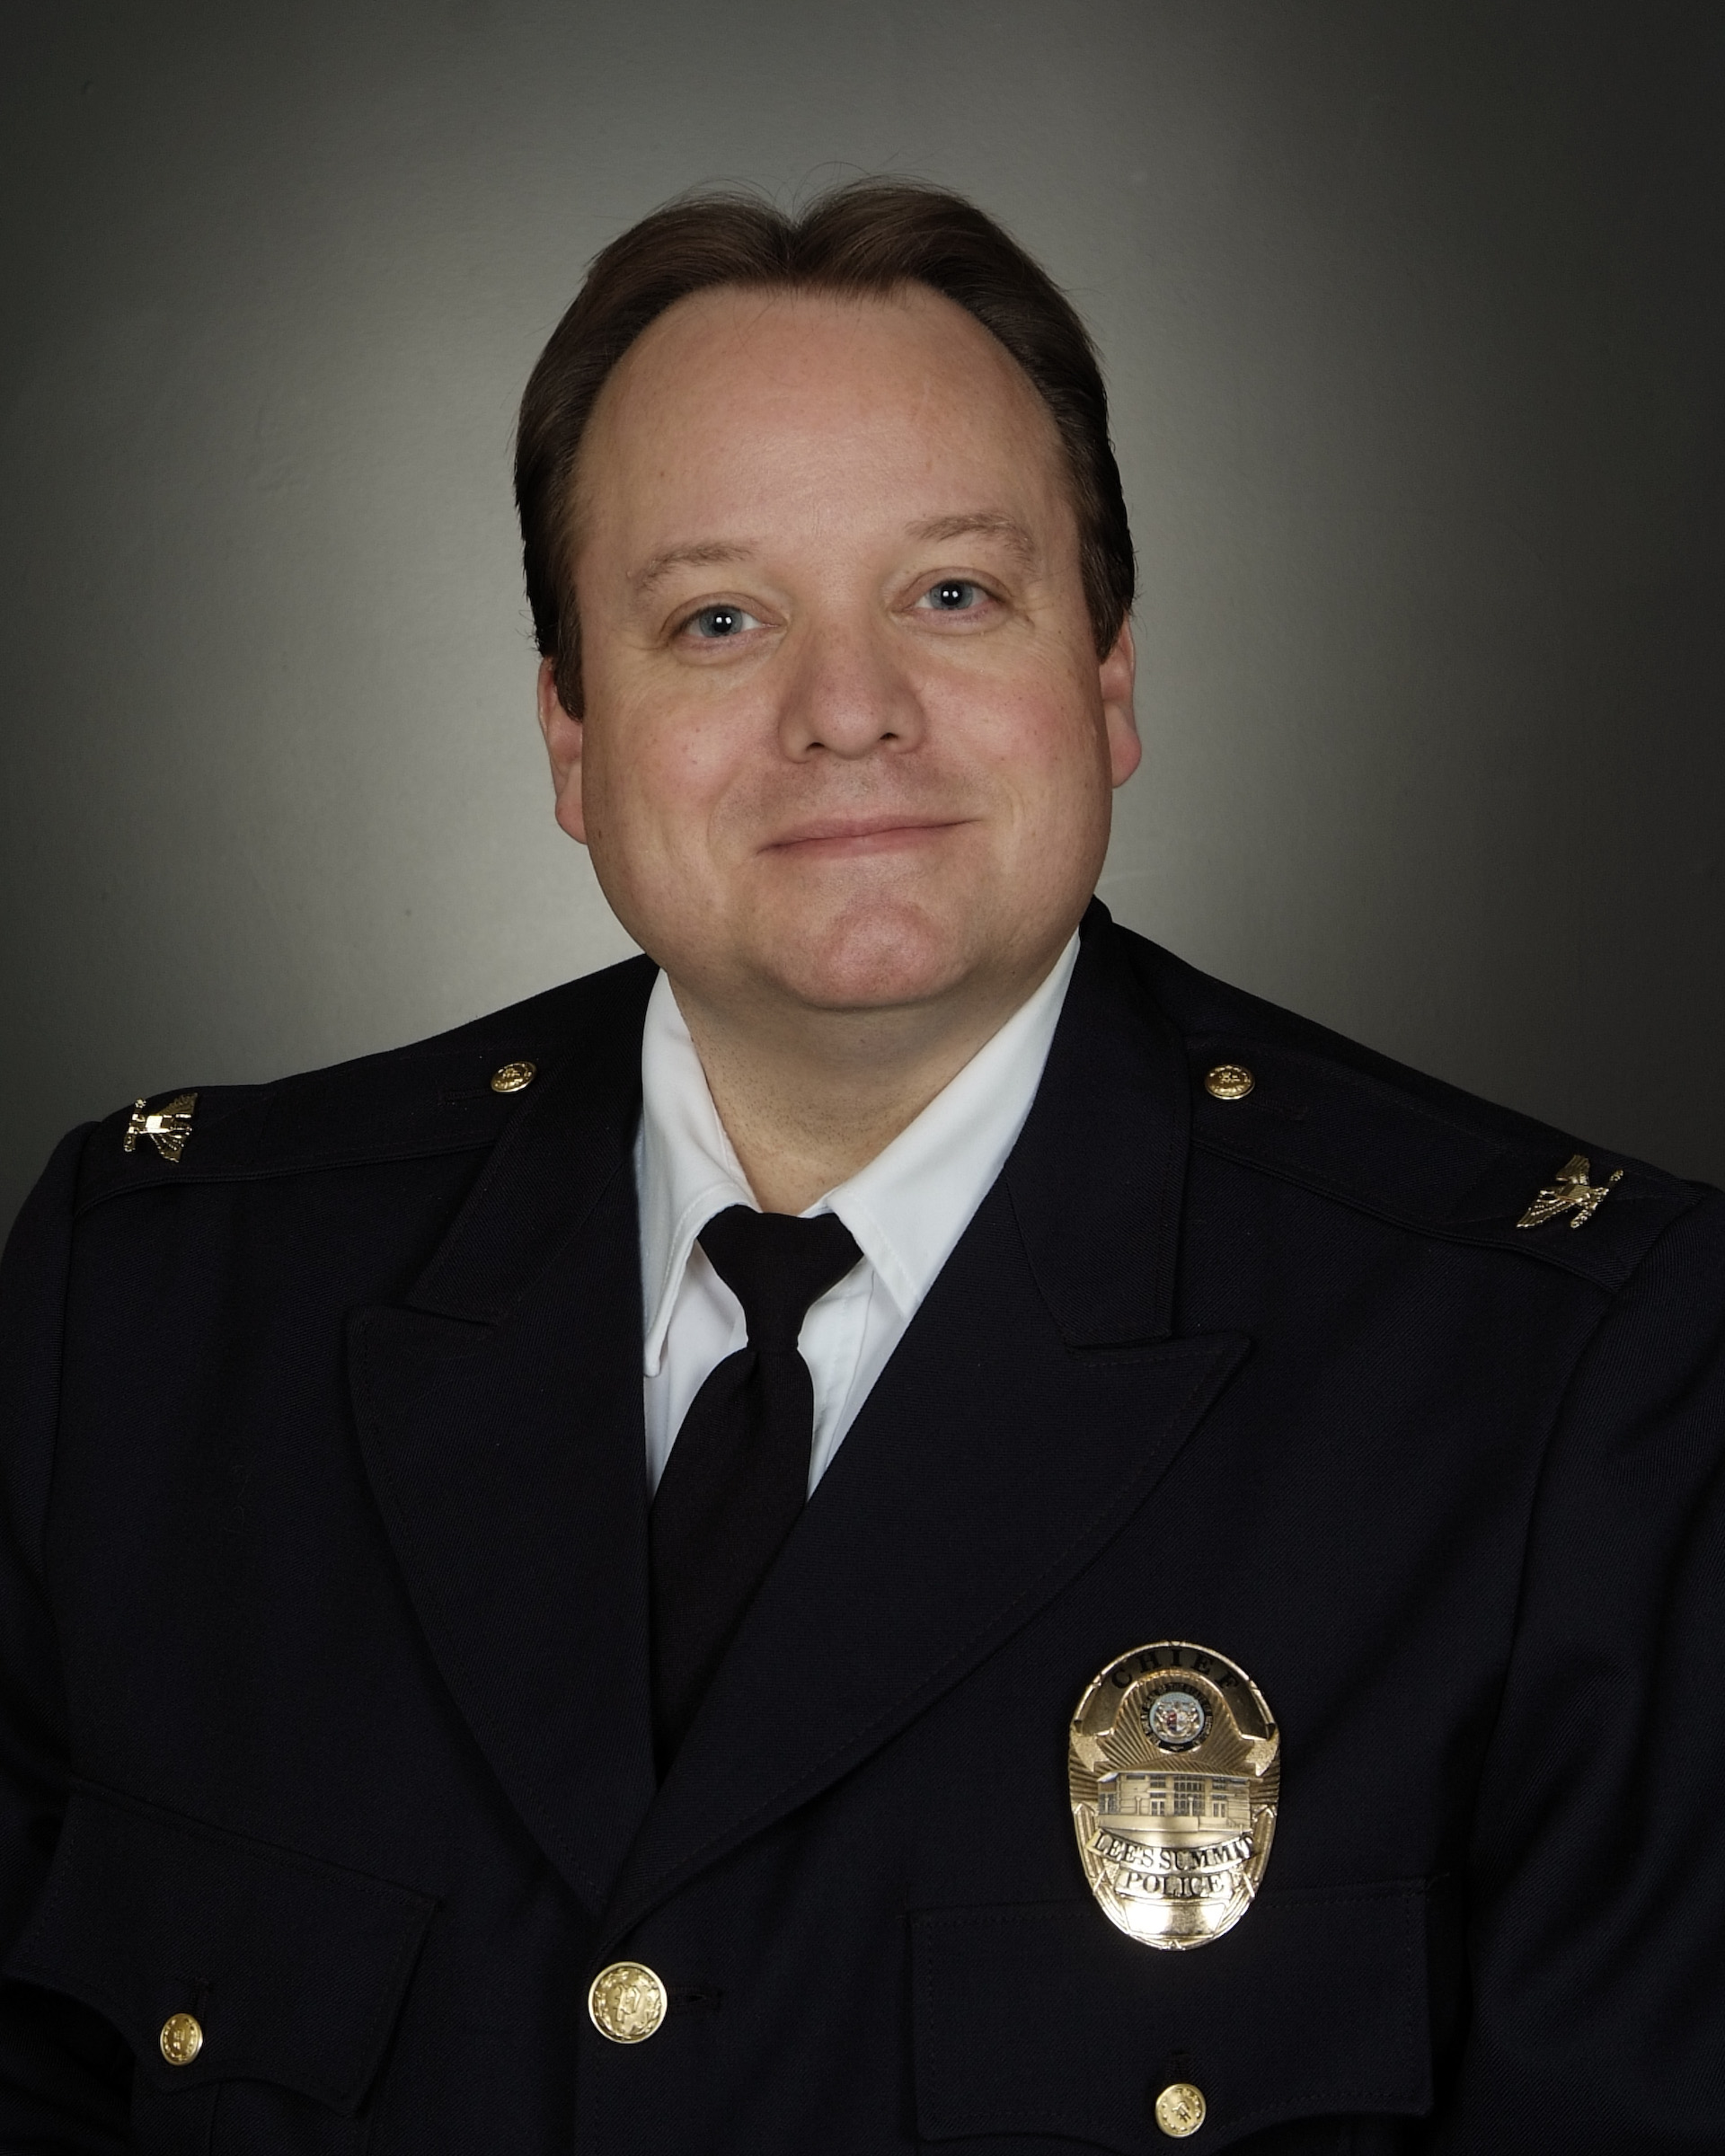 Image of Chief Travis Forbes.